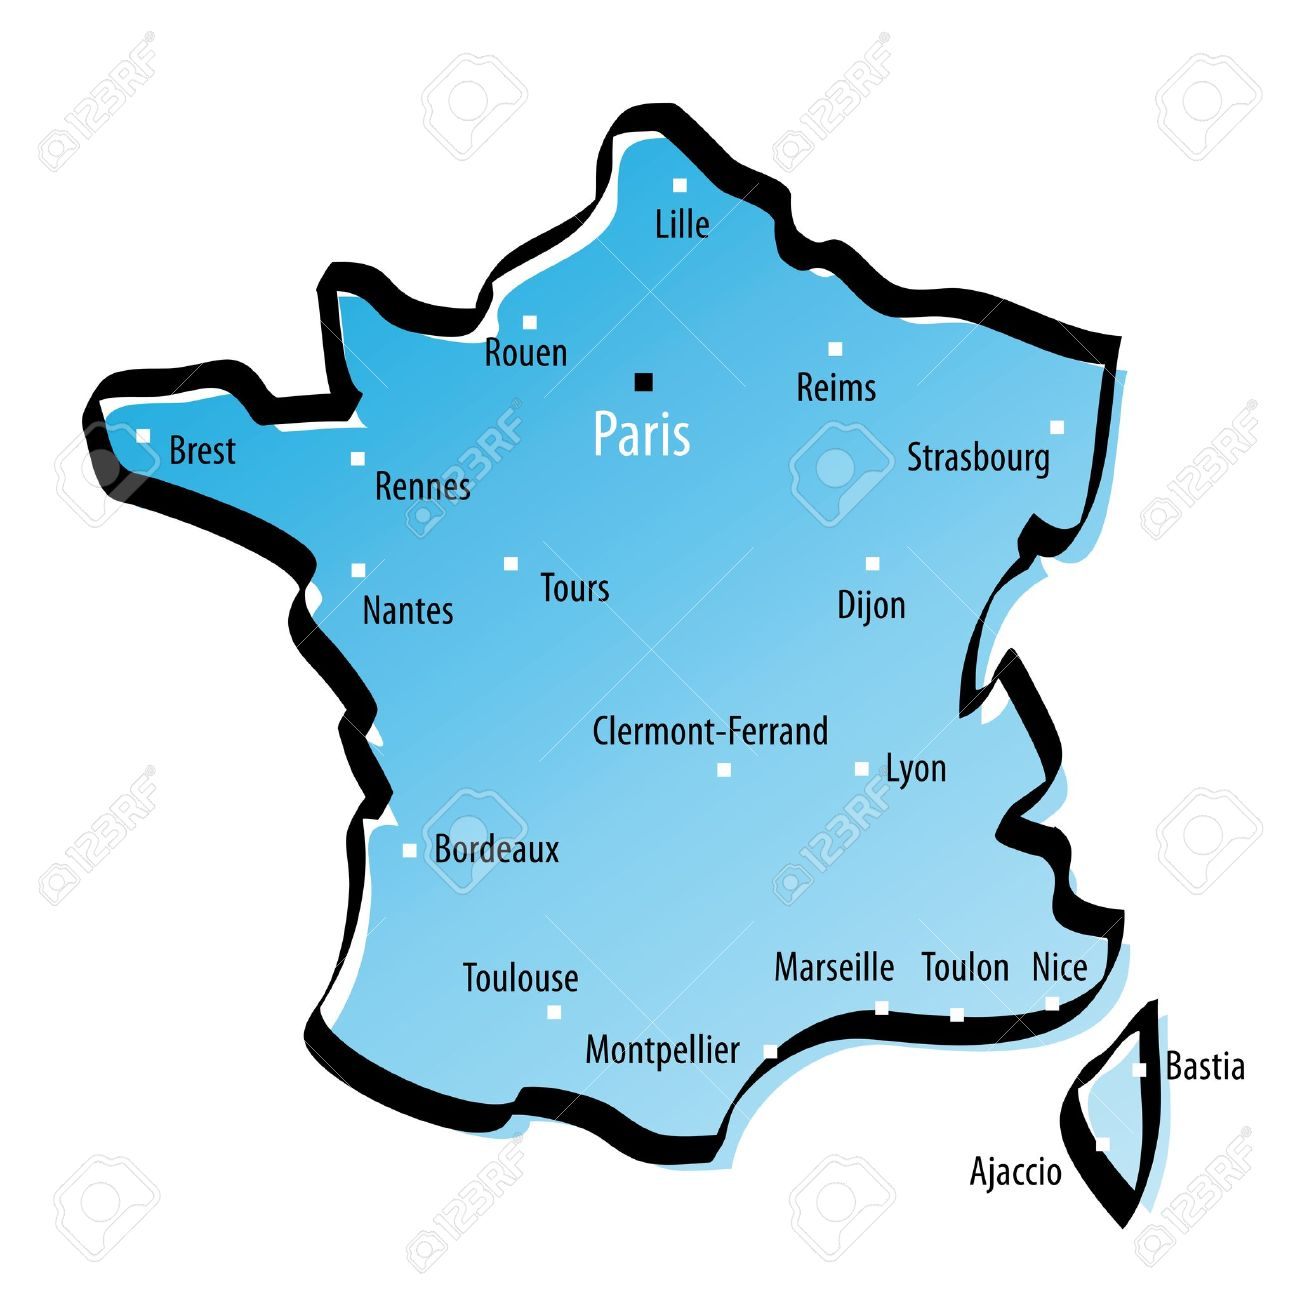 Map Of France Major Cities.Stylized Map Of France With Major Cities Royalty Free Cliparts